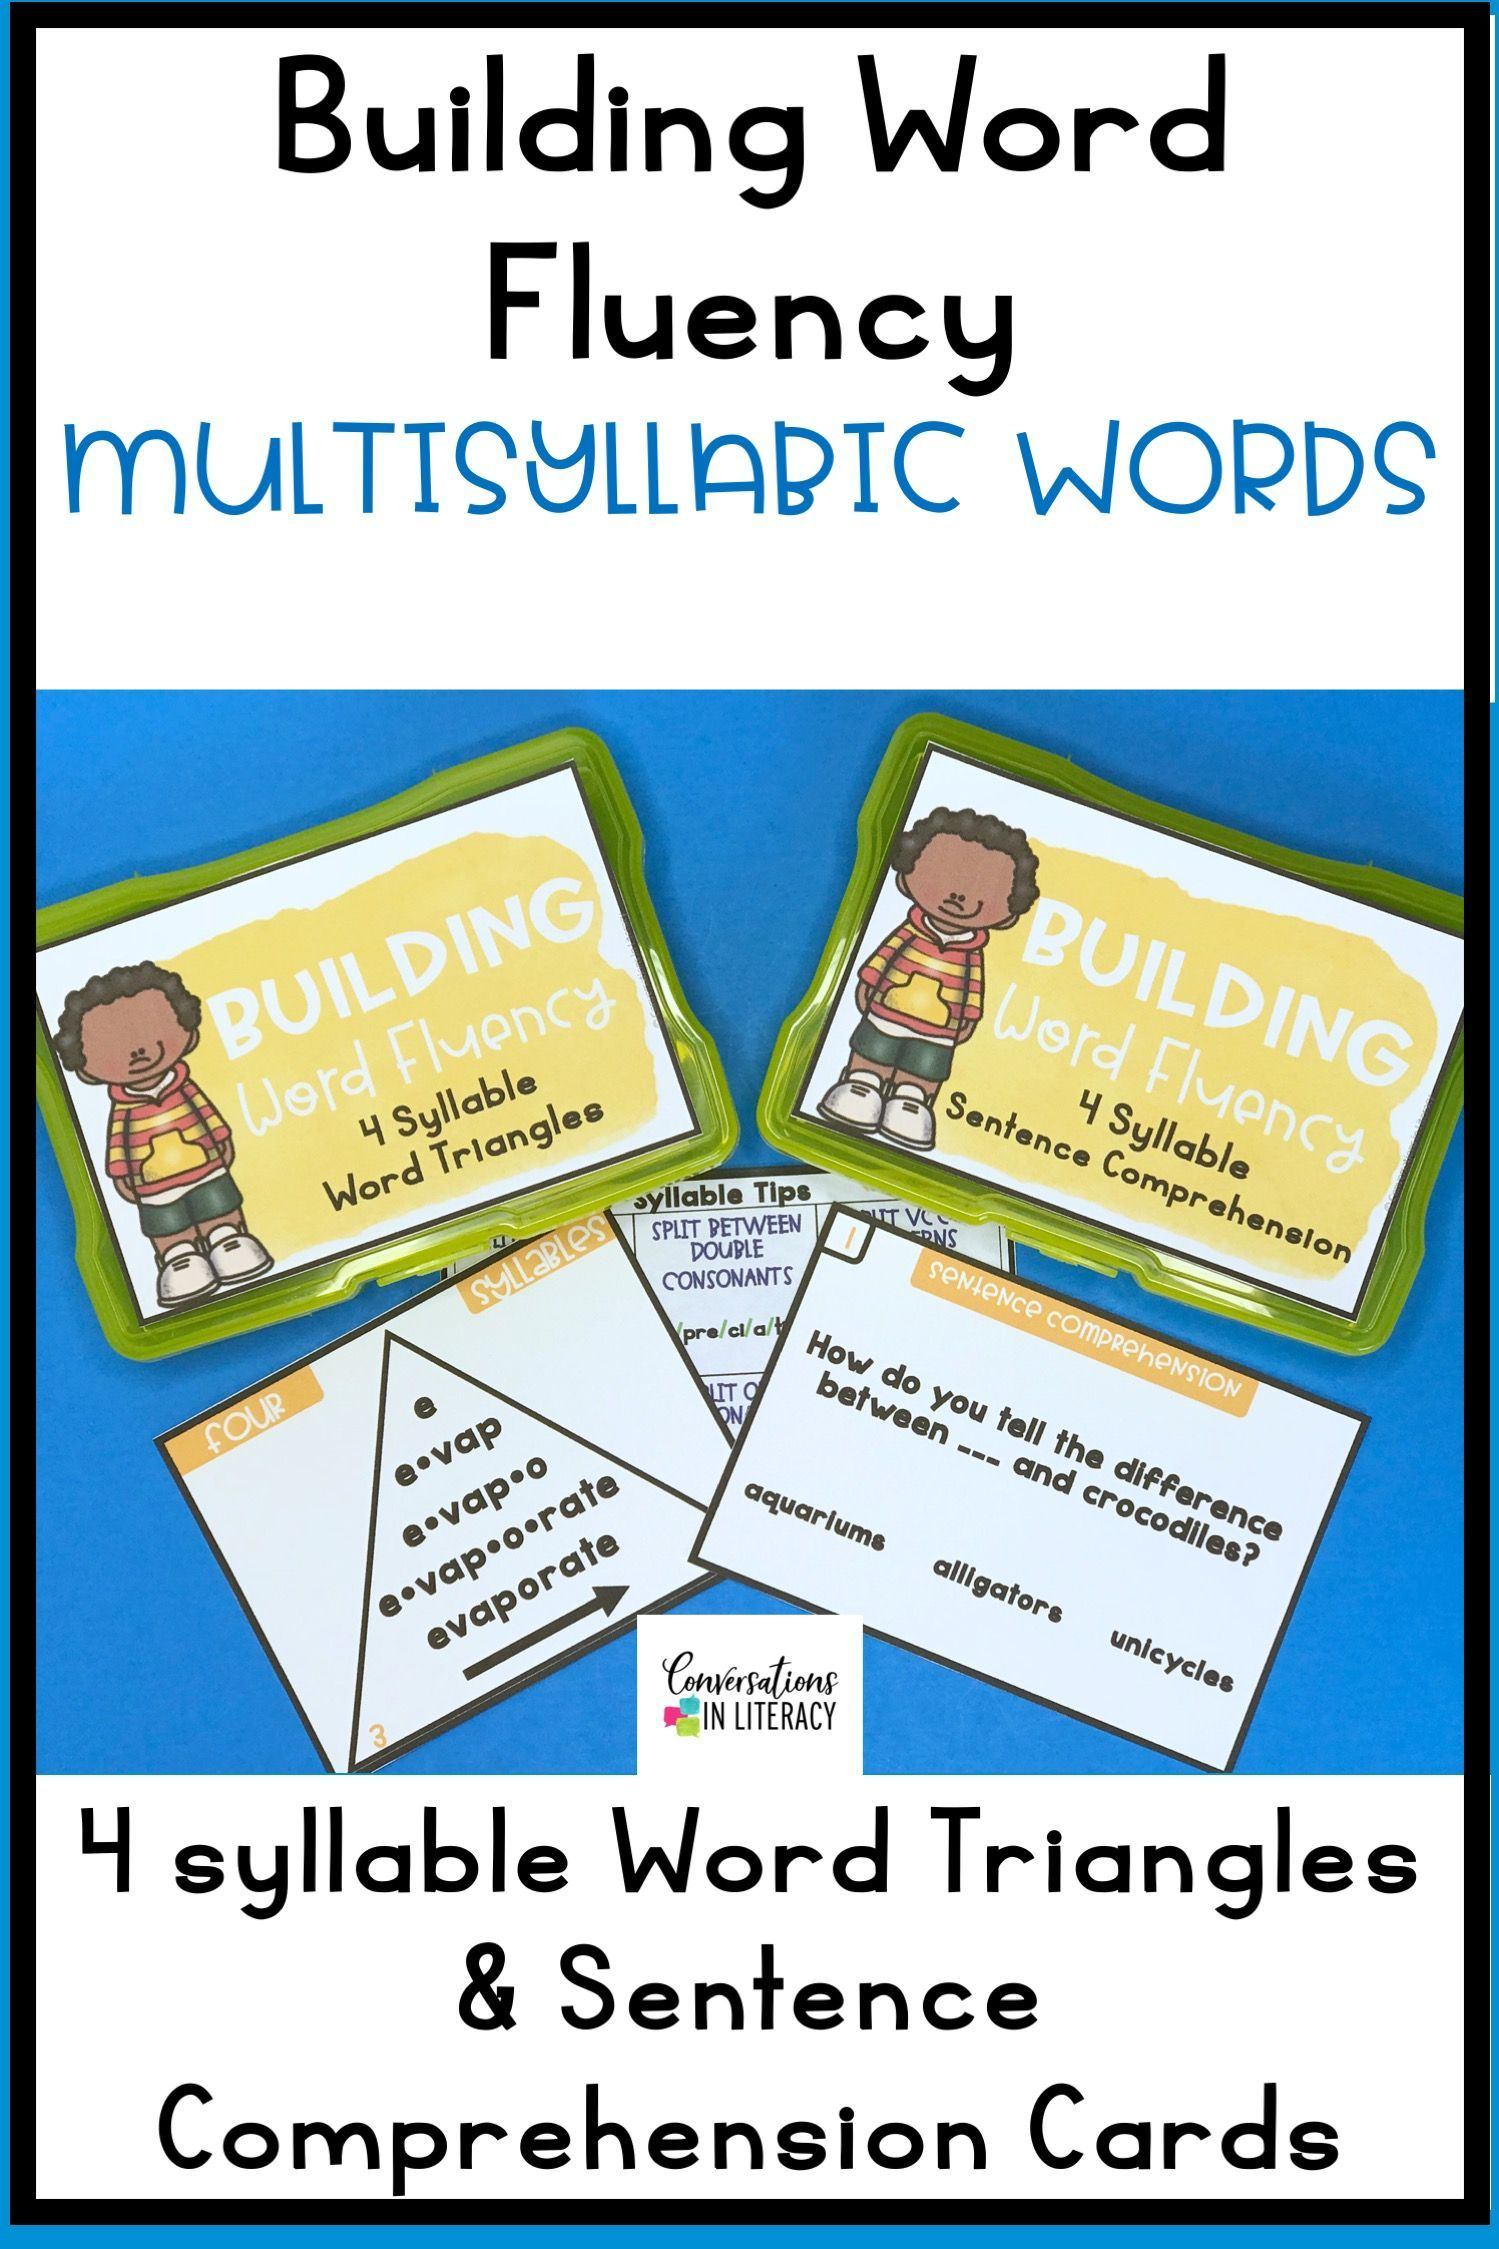 medium resolution of Decoding Multisyllabic Words (4 syllables) with Word Triangles and Sentence  …   Multisyllabic words